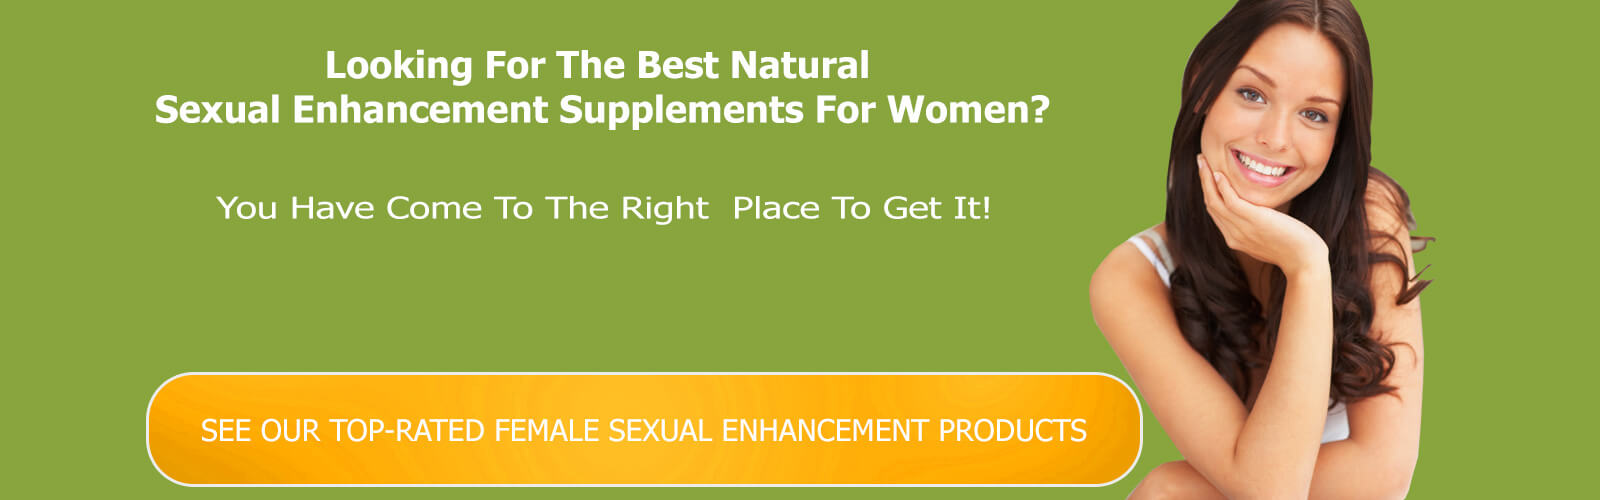 Herbal Female Supplements